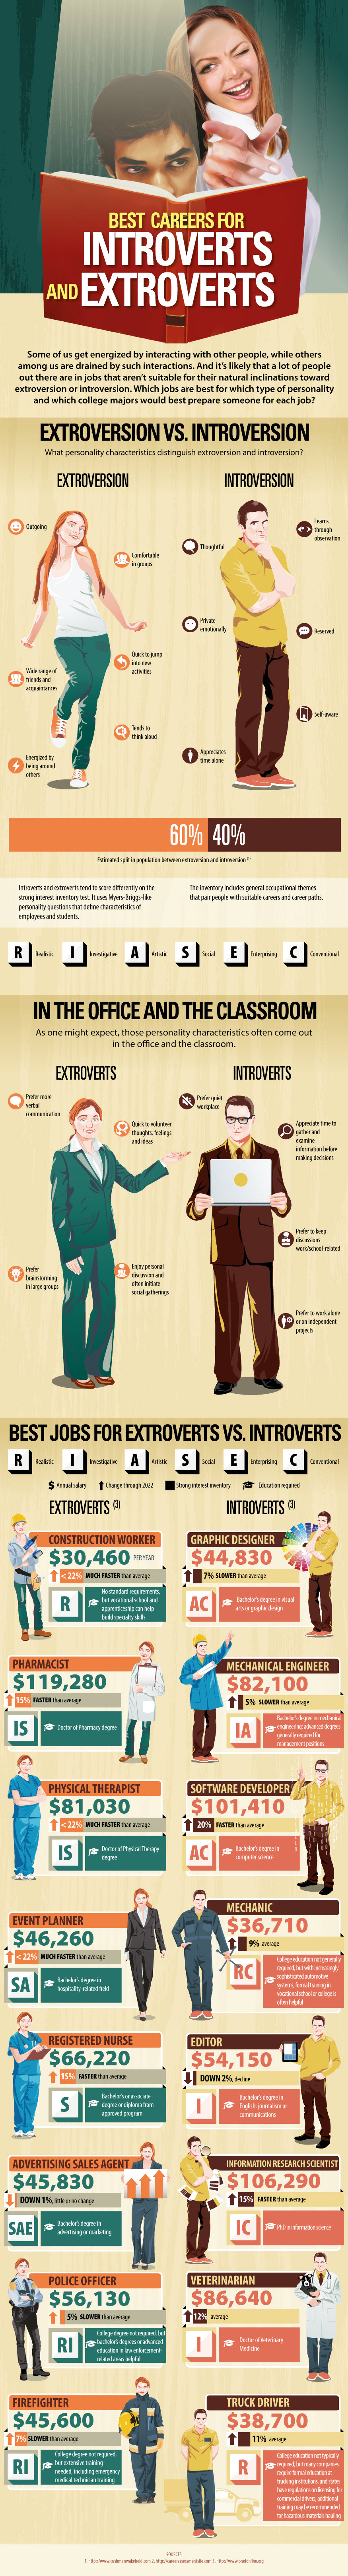 careers for intorverts and extroverts